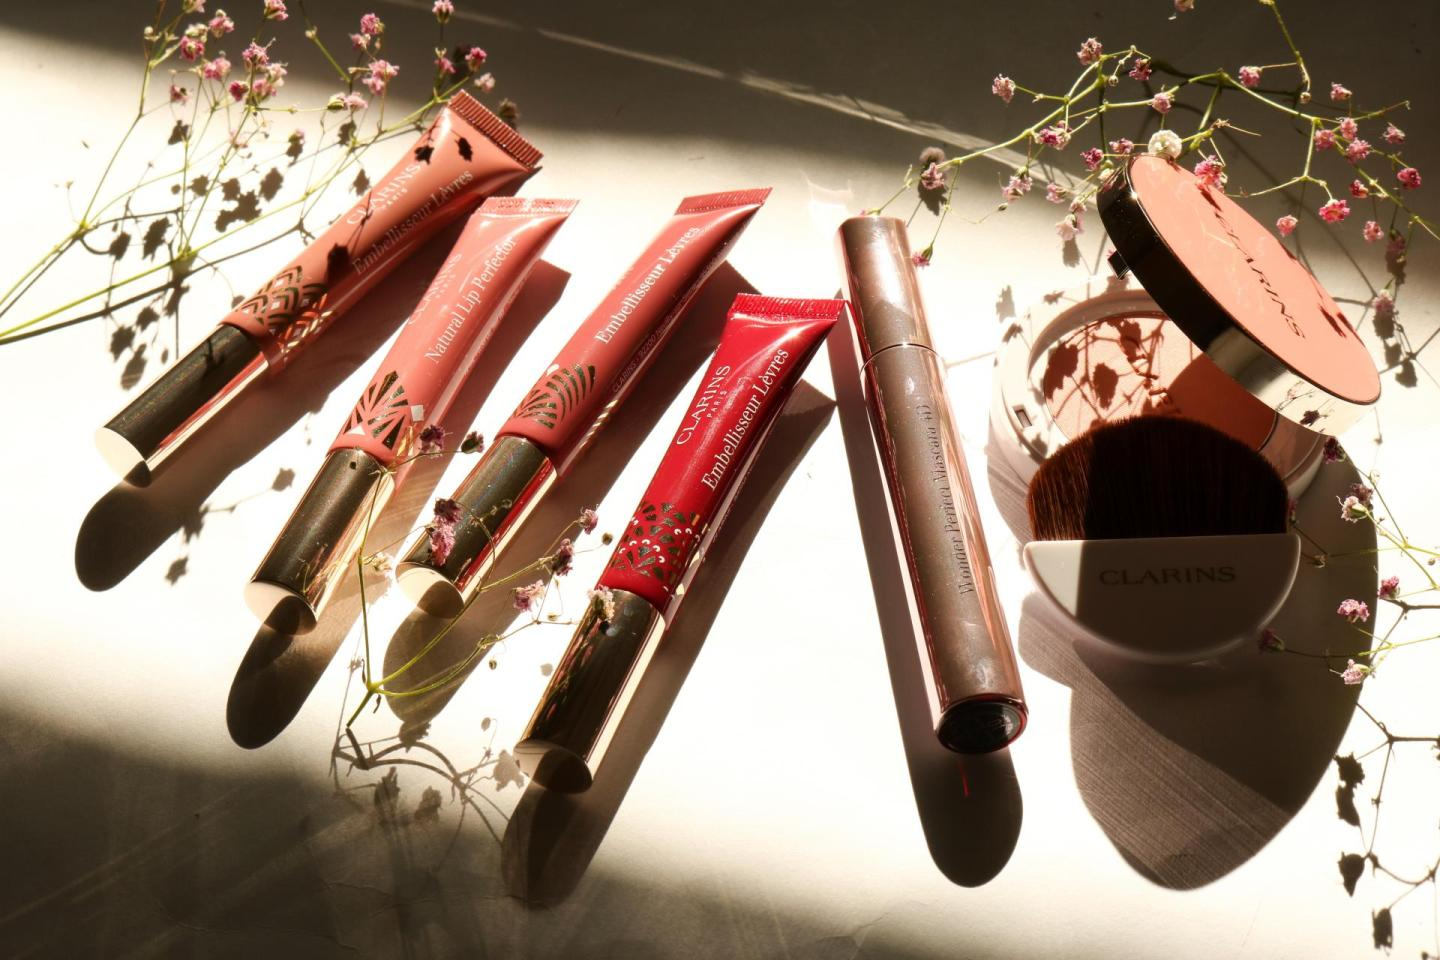 clarins autumn look 2019